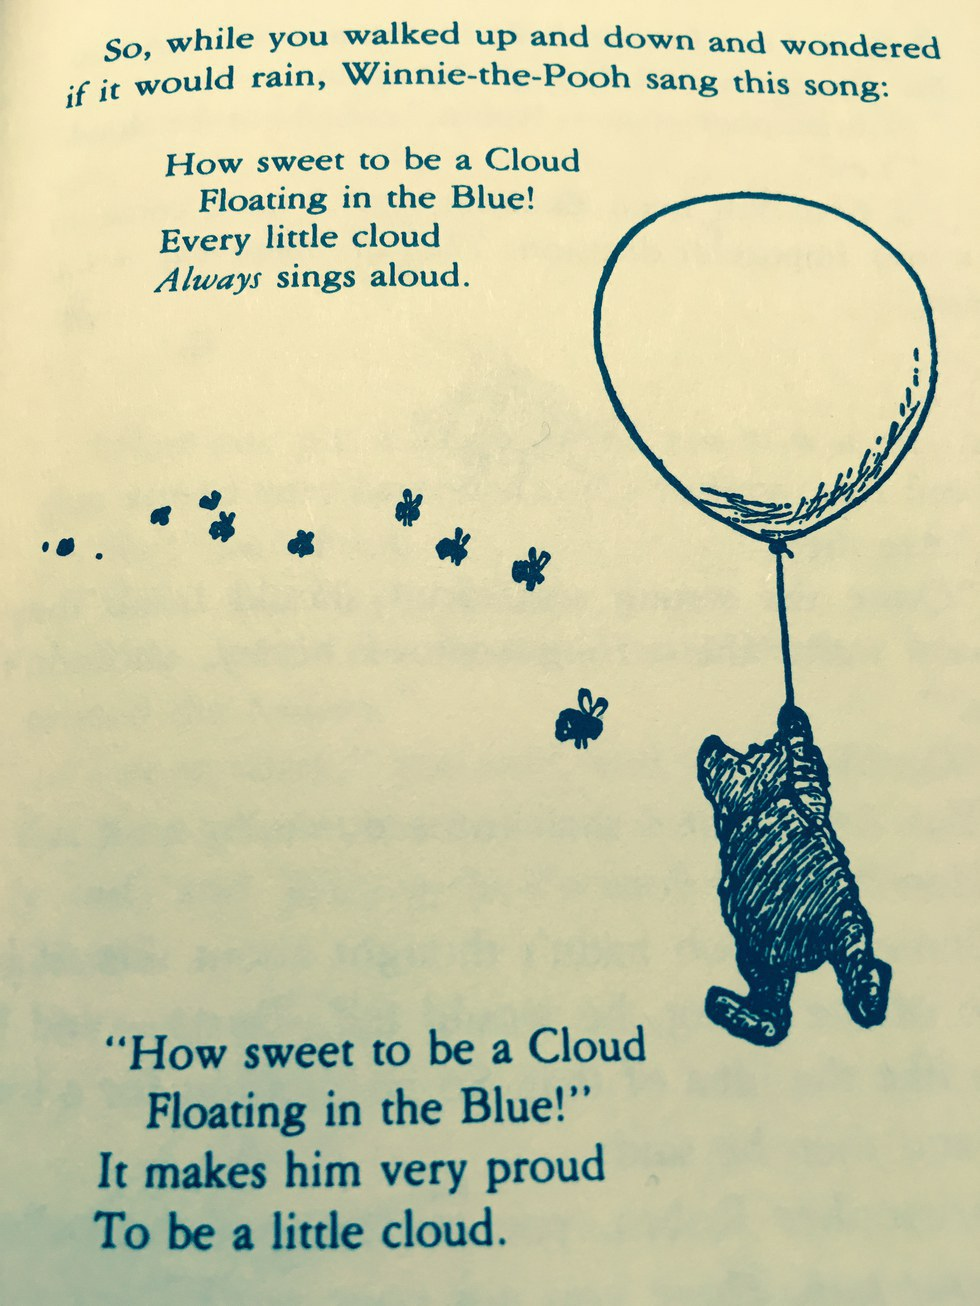 Winnie The Pooh Quotes About Love And Friendship 10 Reasons To Read Winniethepooh As A Grown Up